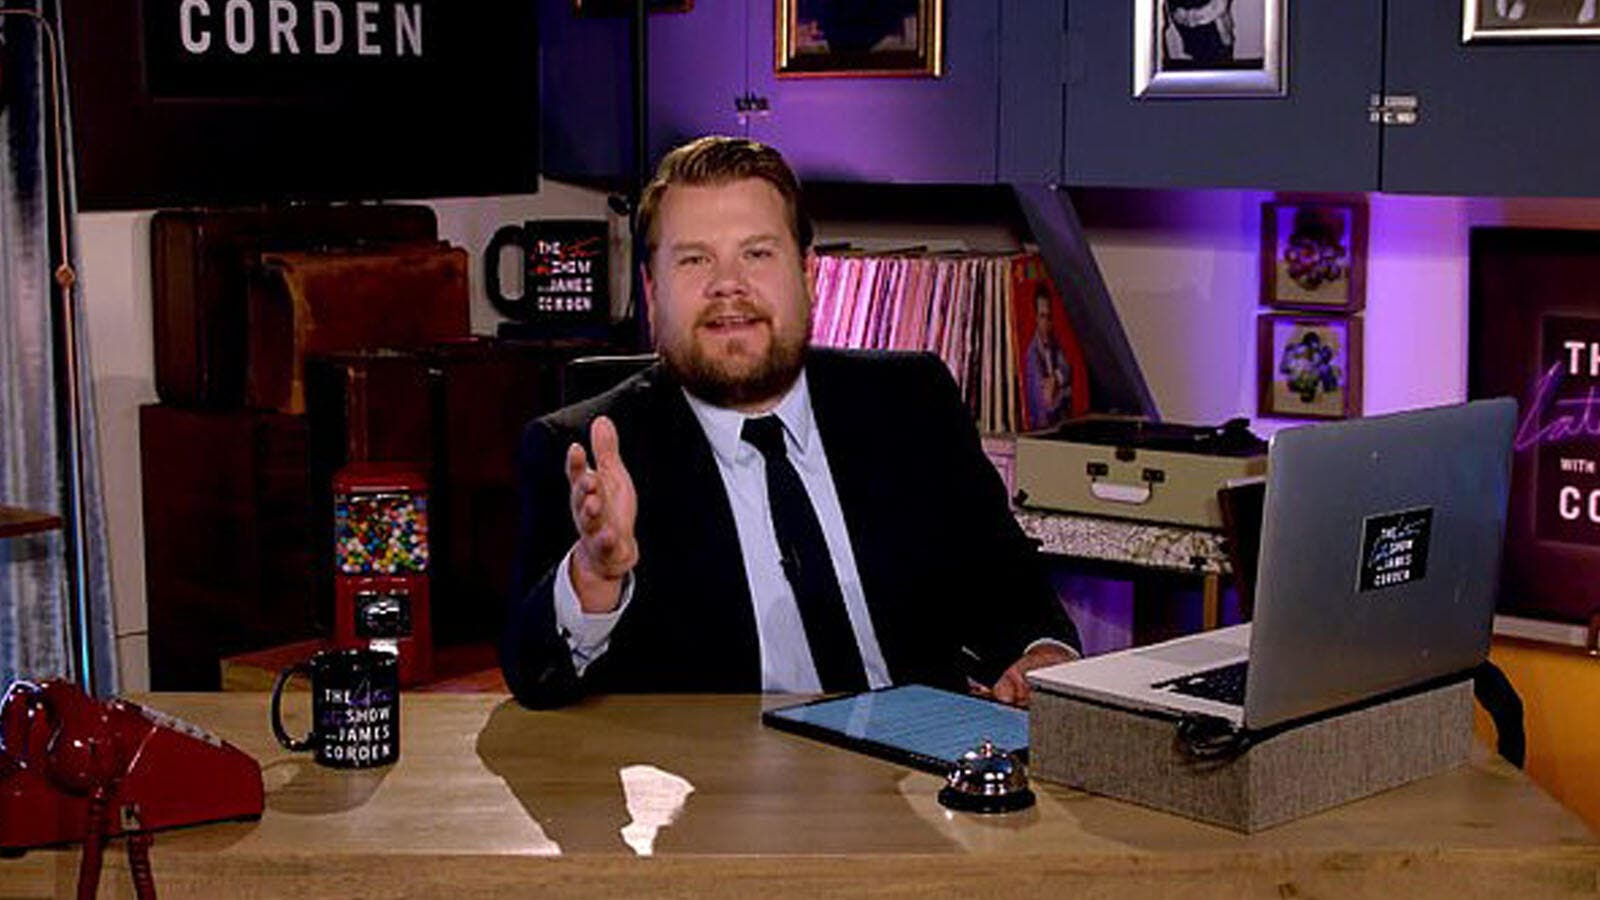 James Corden Undergoes Eye Surgery, Is 'Doing Well & Recovering'